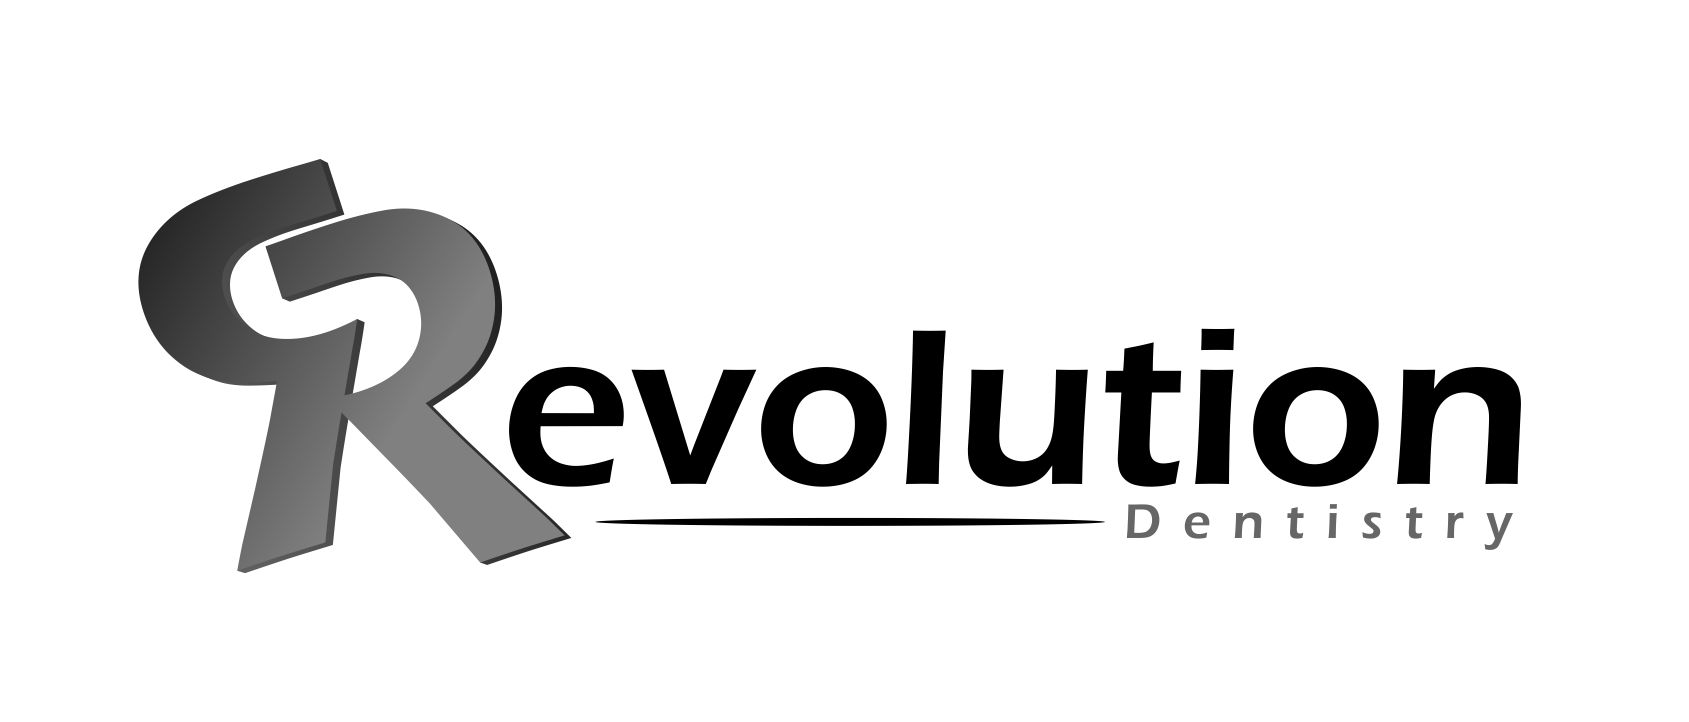 Logo Design by Choirul Jcd - Entry No. 35 in the Logo Design Contest Artistic Logo Design for Revolution Dentistry.